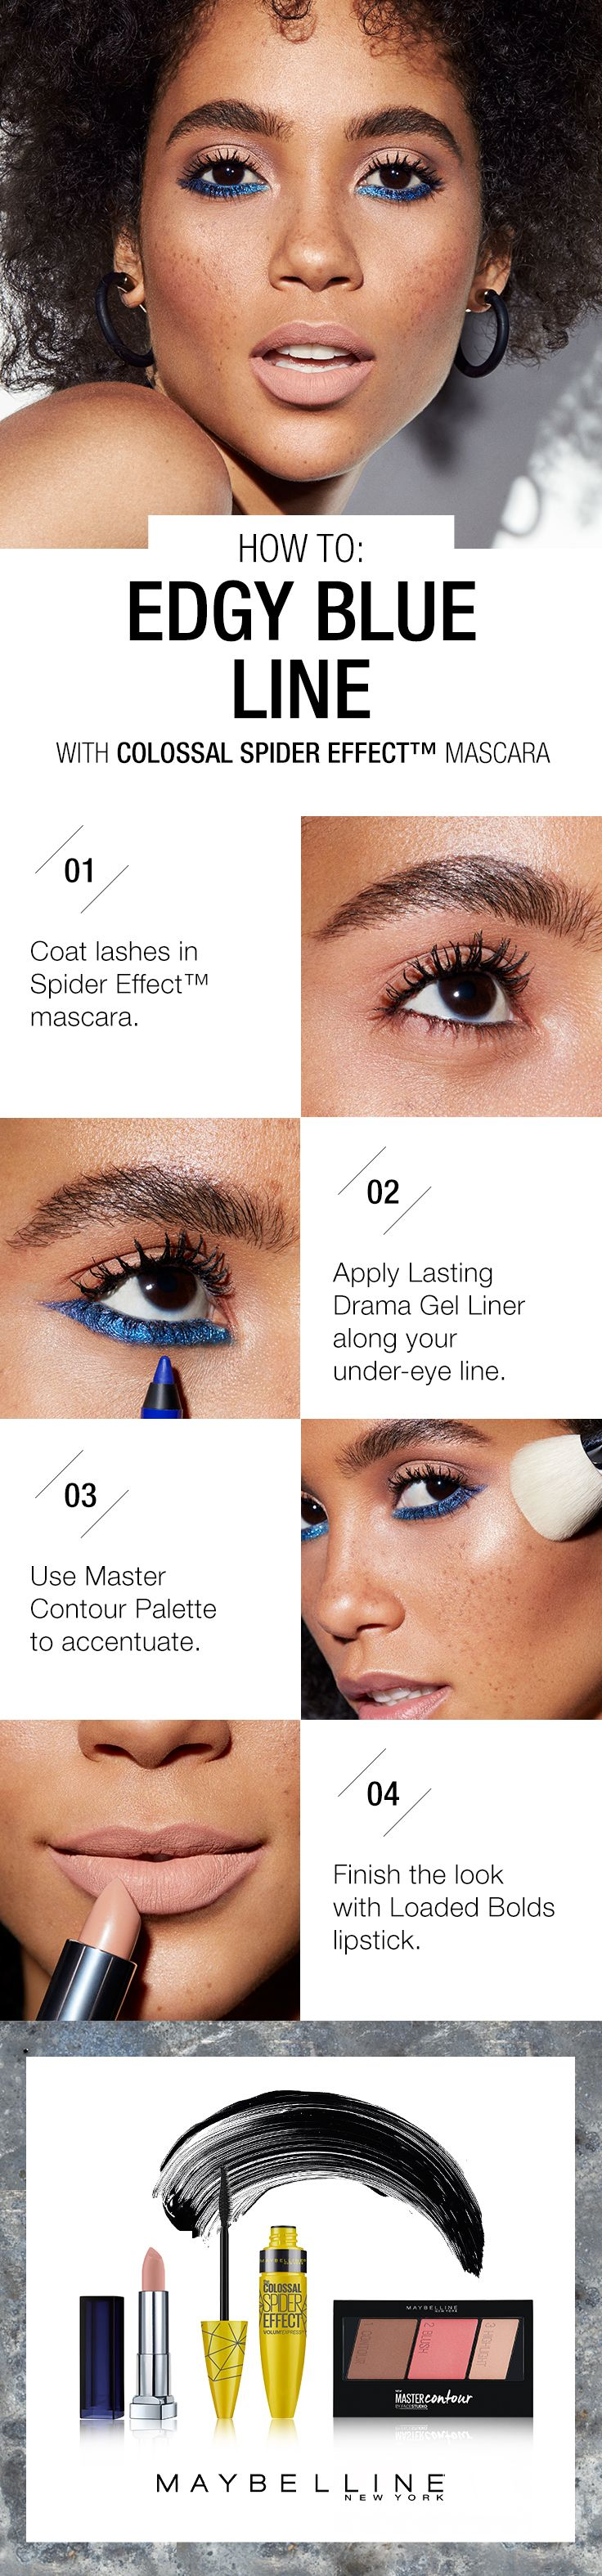 40 best get the look bold looks images on pinterest makeup looking to learn how to wear blue liner amp up the edge with this makeup ccuart Gallery